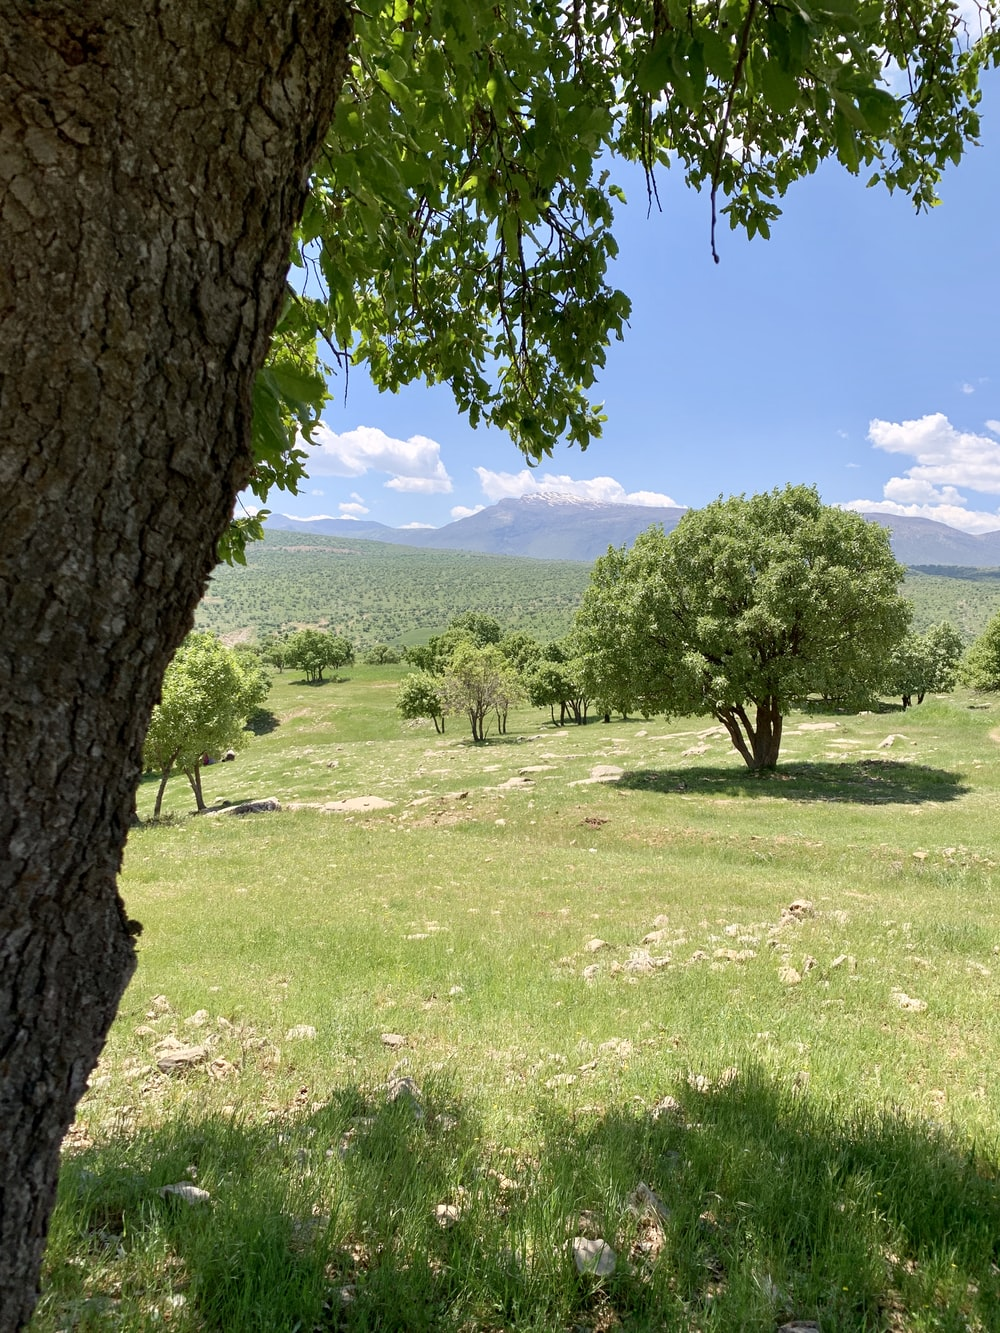 green grass field with green trees and mountain in distance